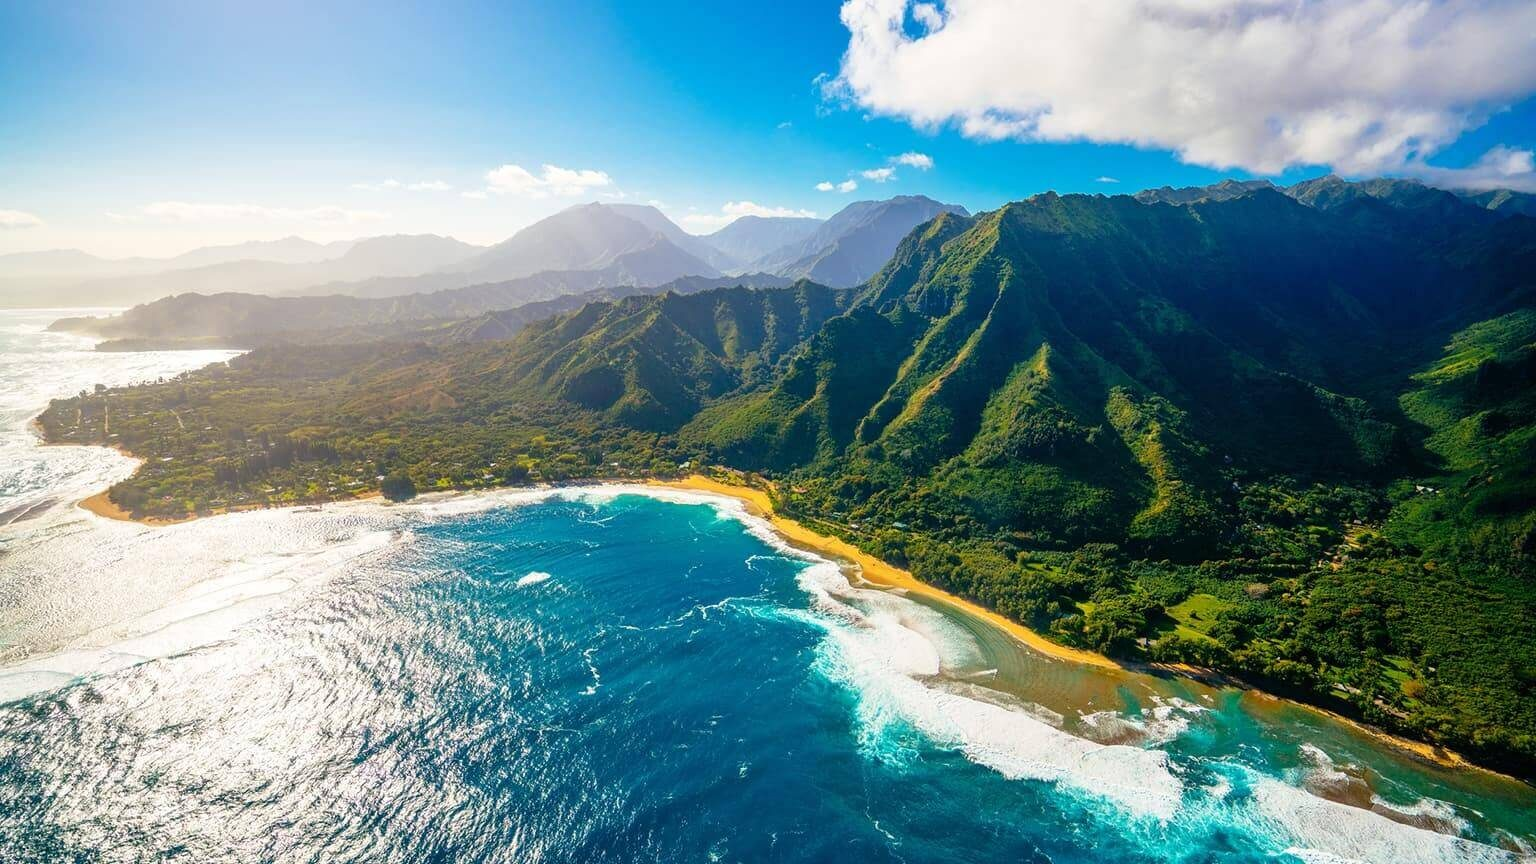 Aerial view of mountains and sea in Hawaii